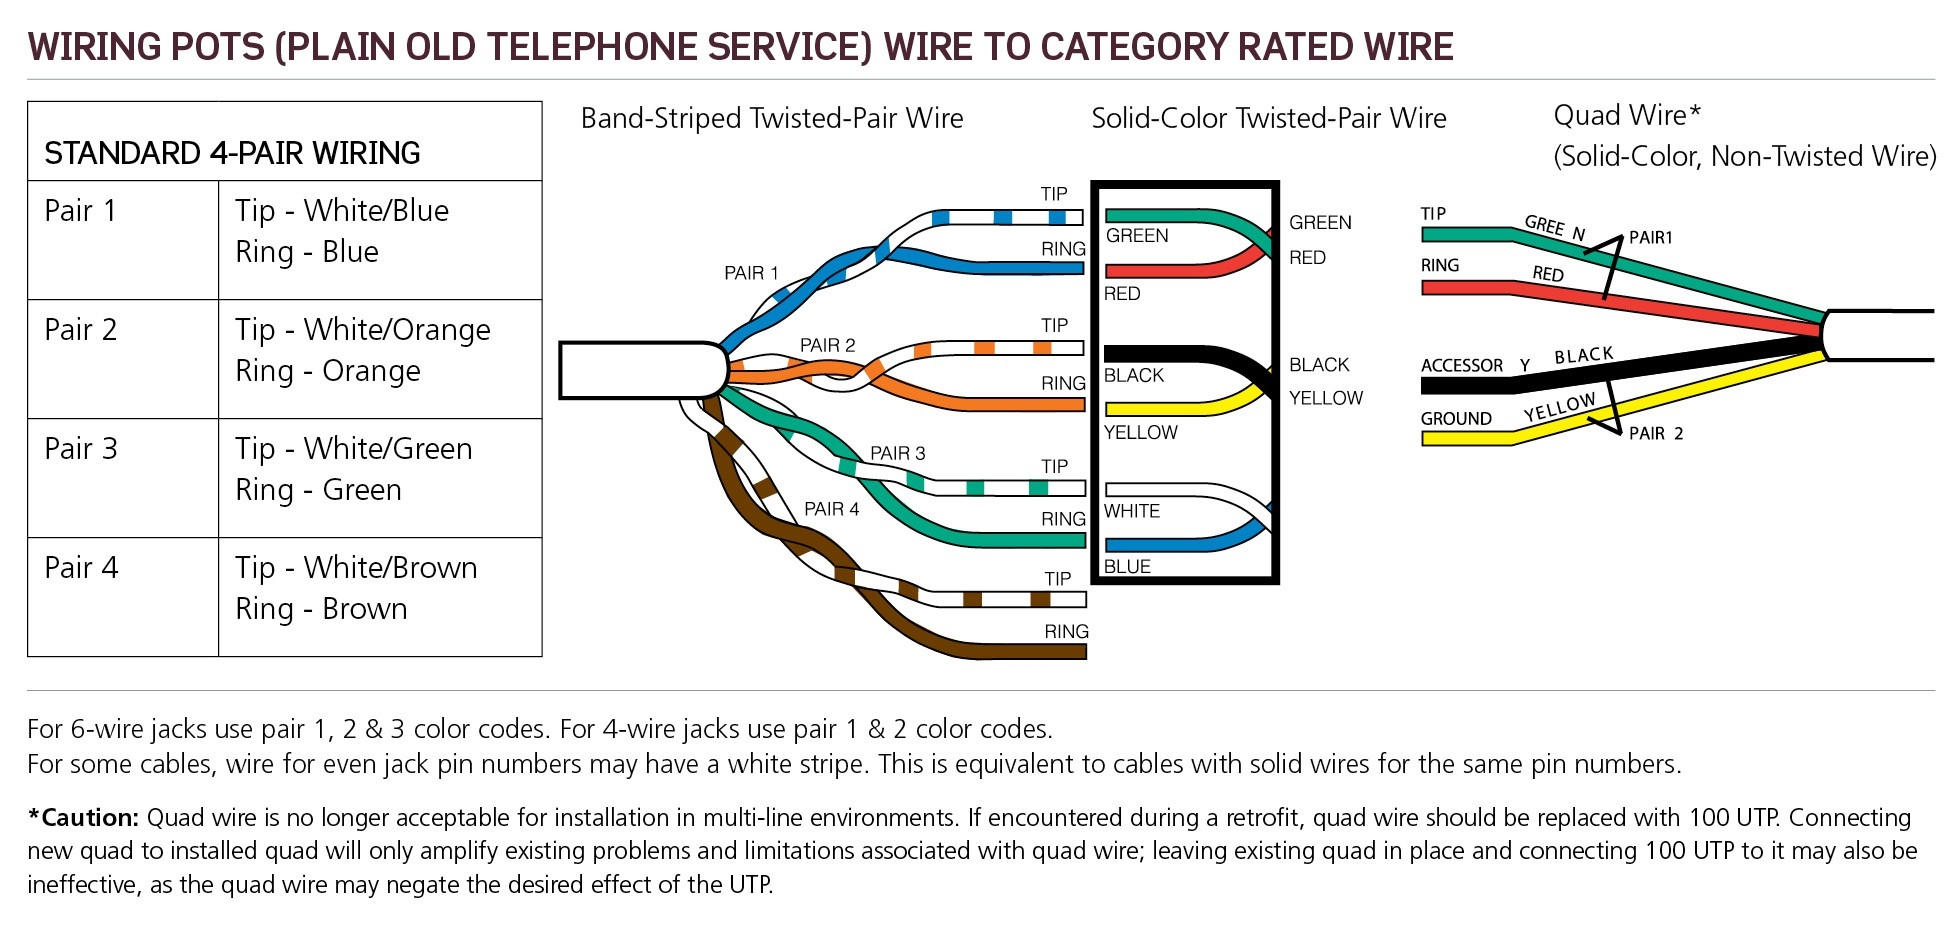 cat5 dsl wiring diagram Collection-In Addition Cat 5 Phone Wiring Color Code Telephone Dsl Wiring Wiring Diagram for Cat5 15-m